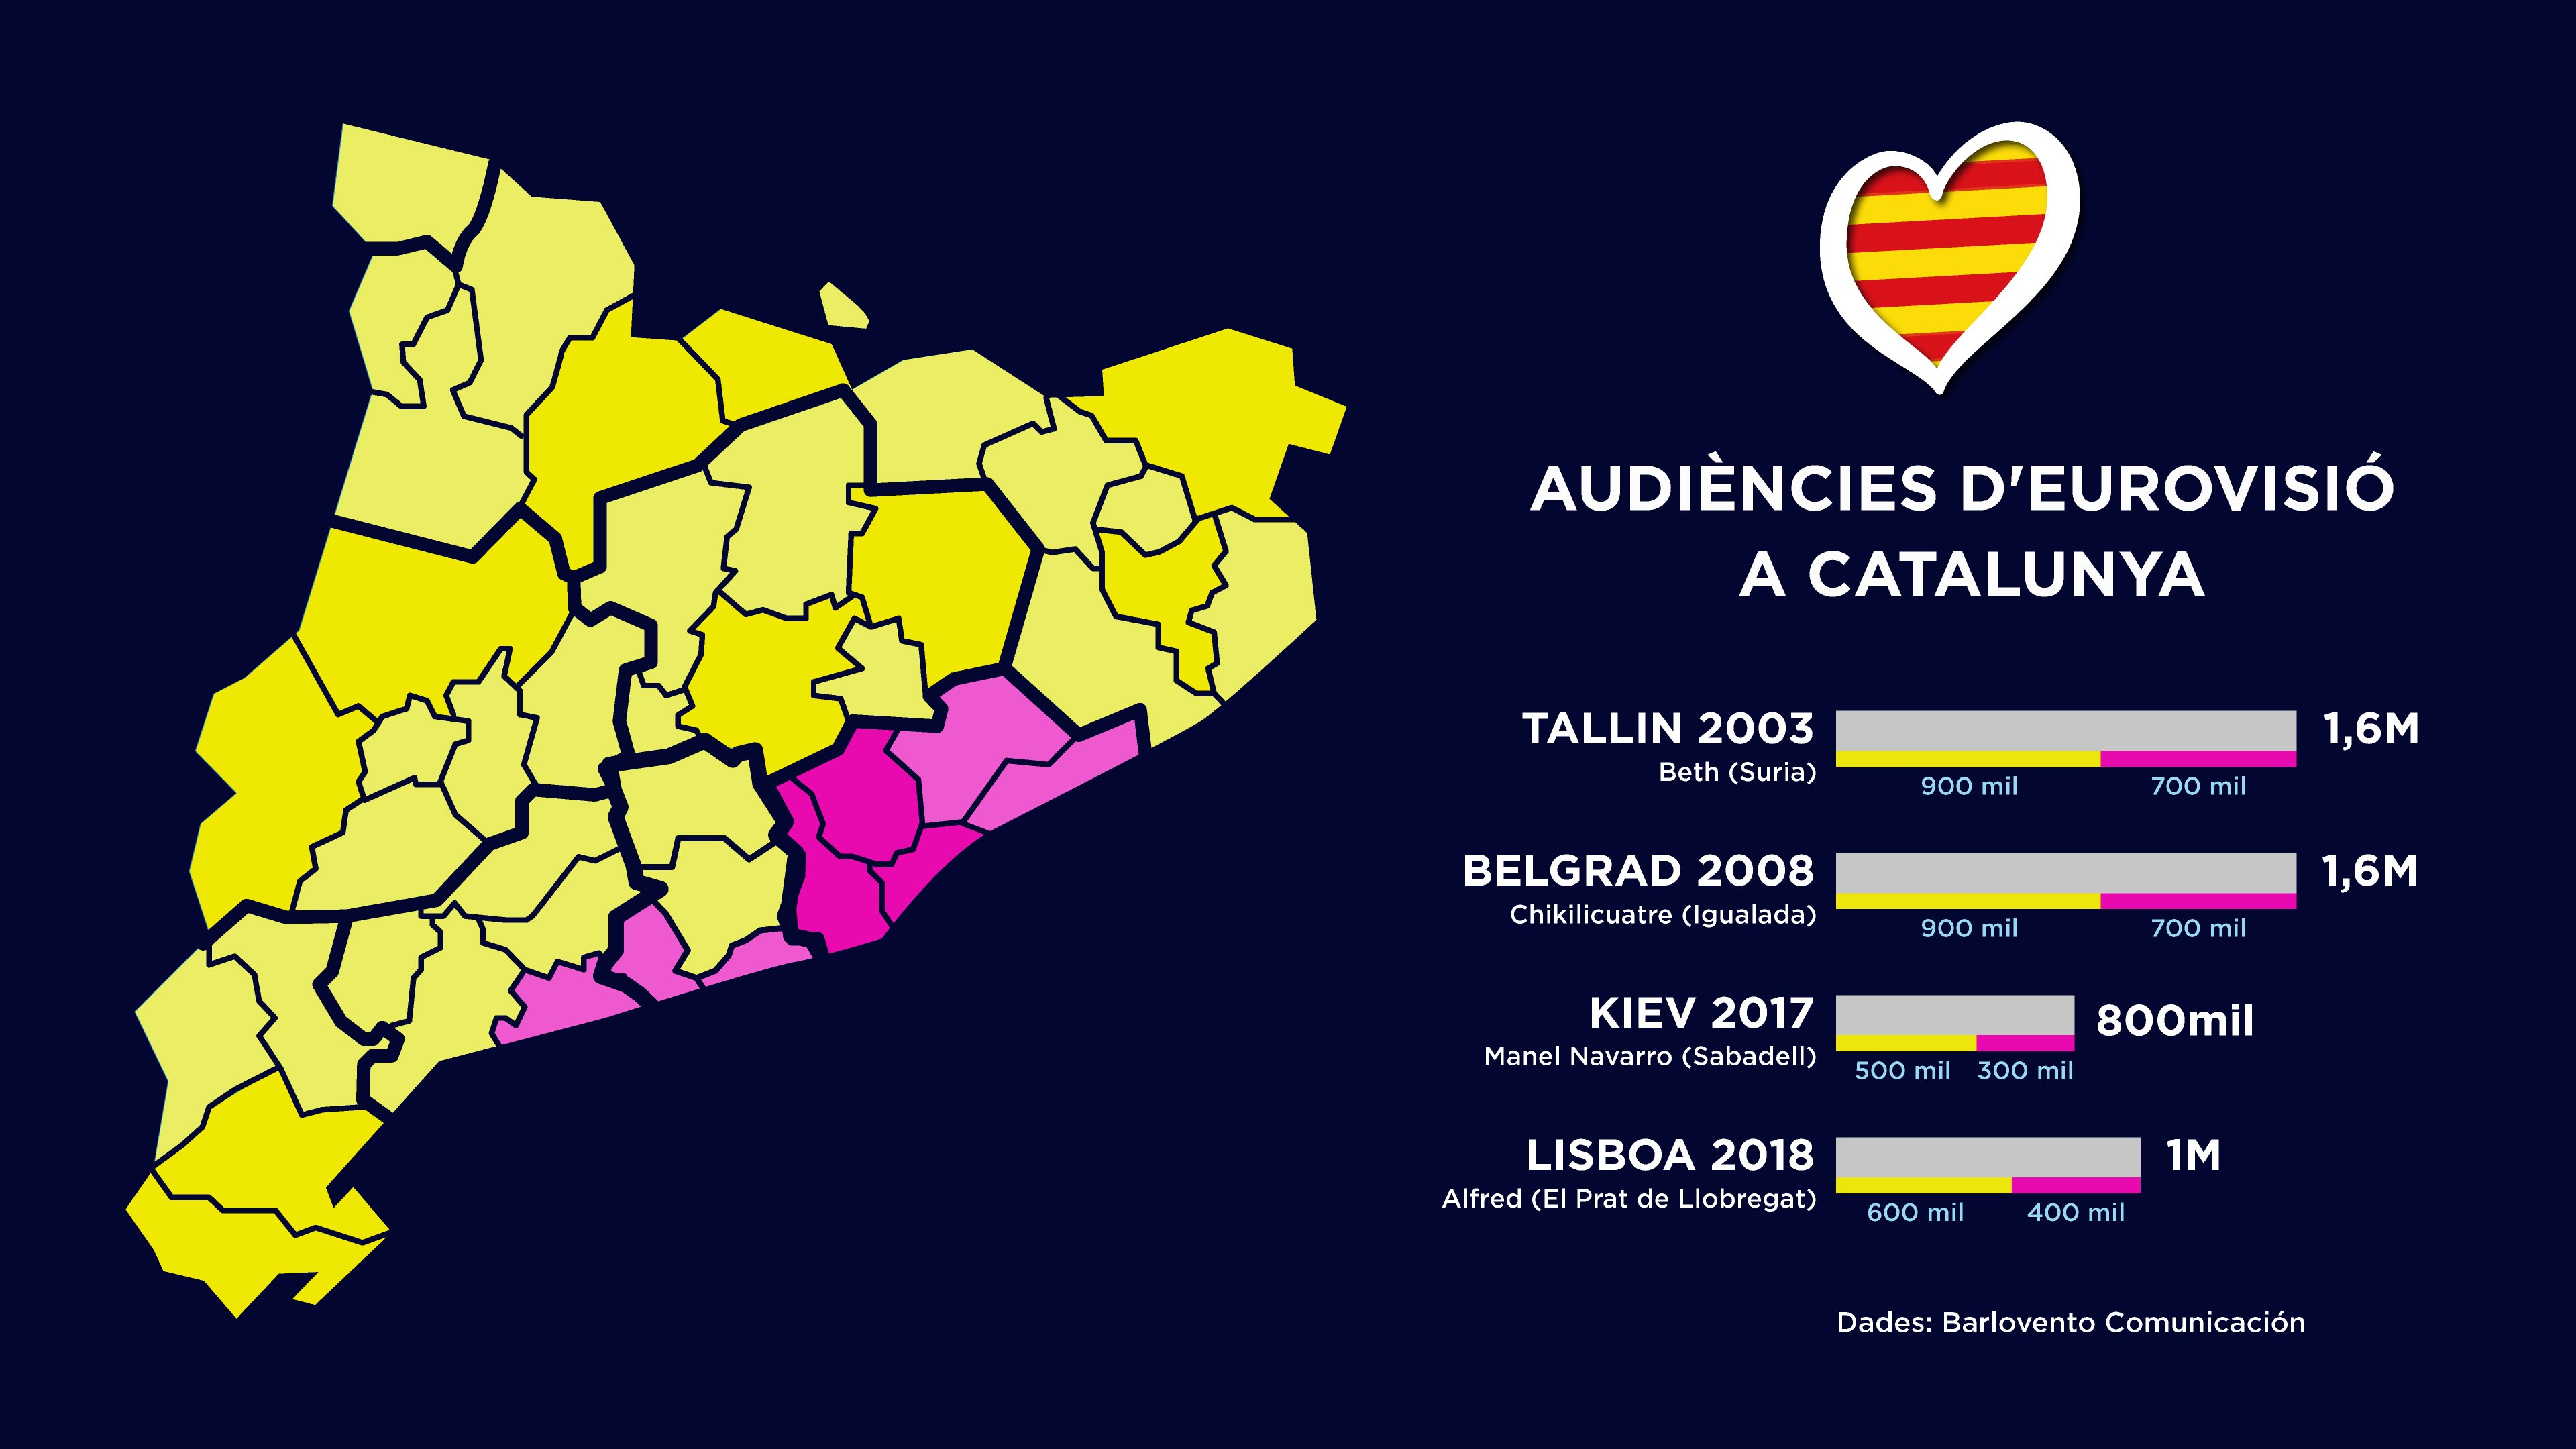 Infografía Audiencia Eurovisio CAT